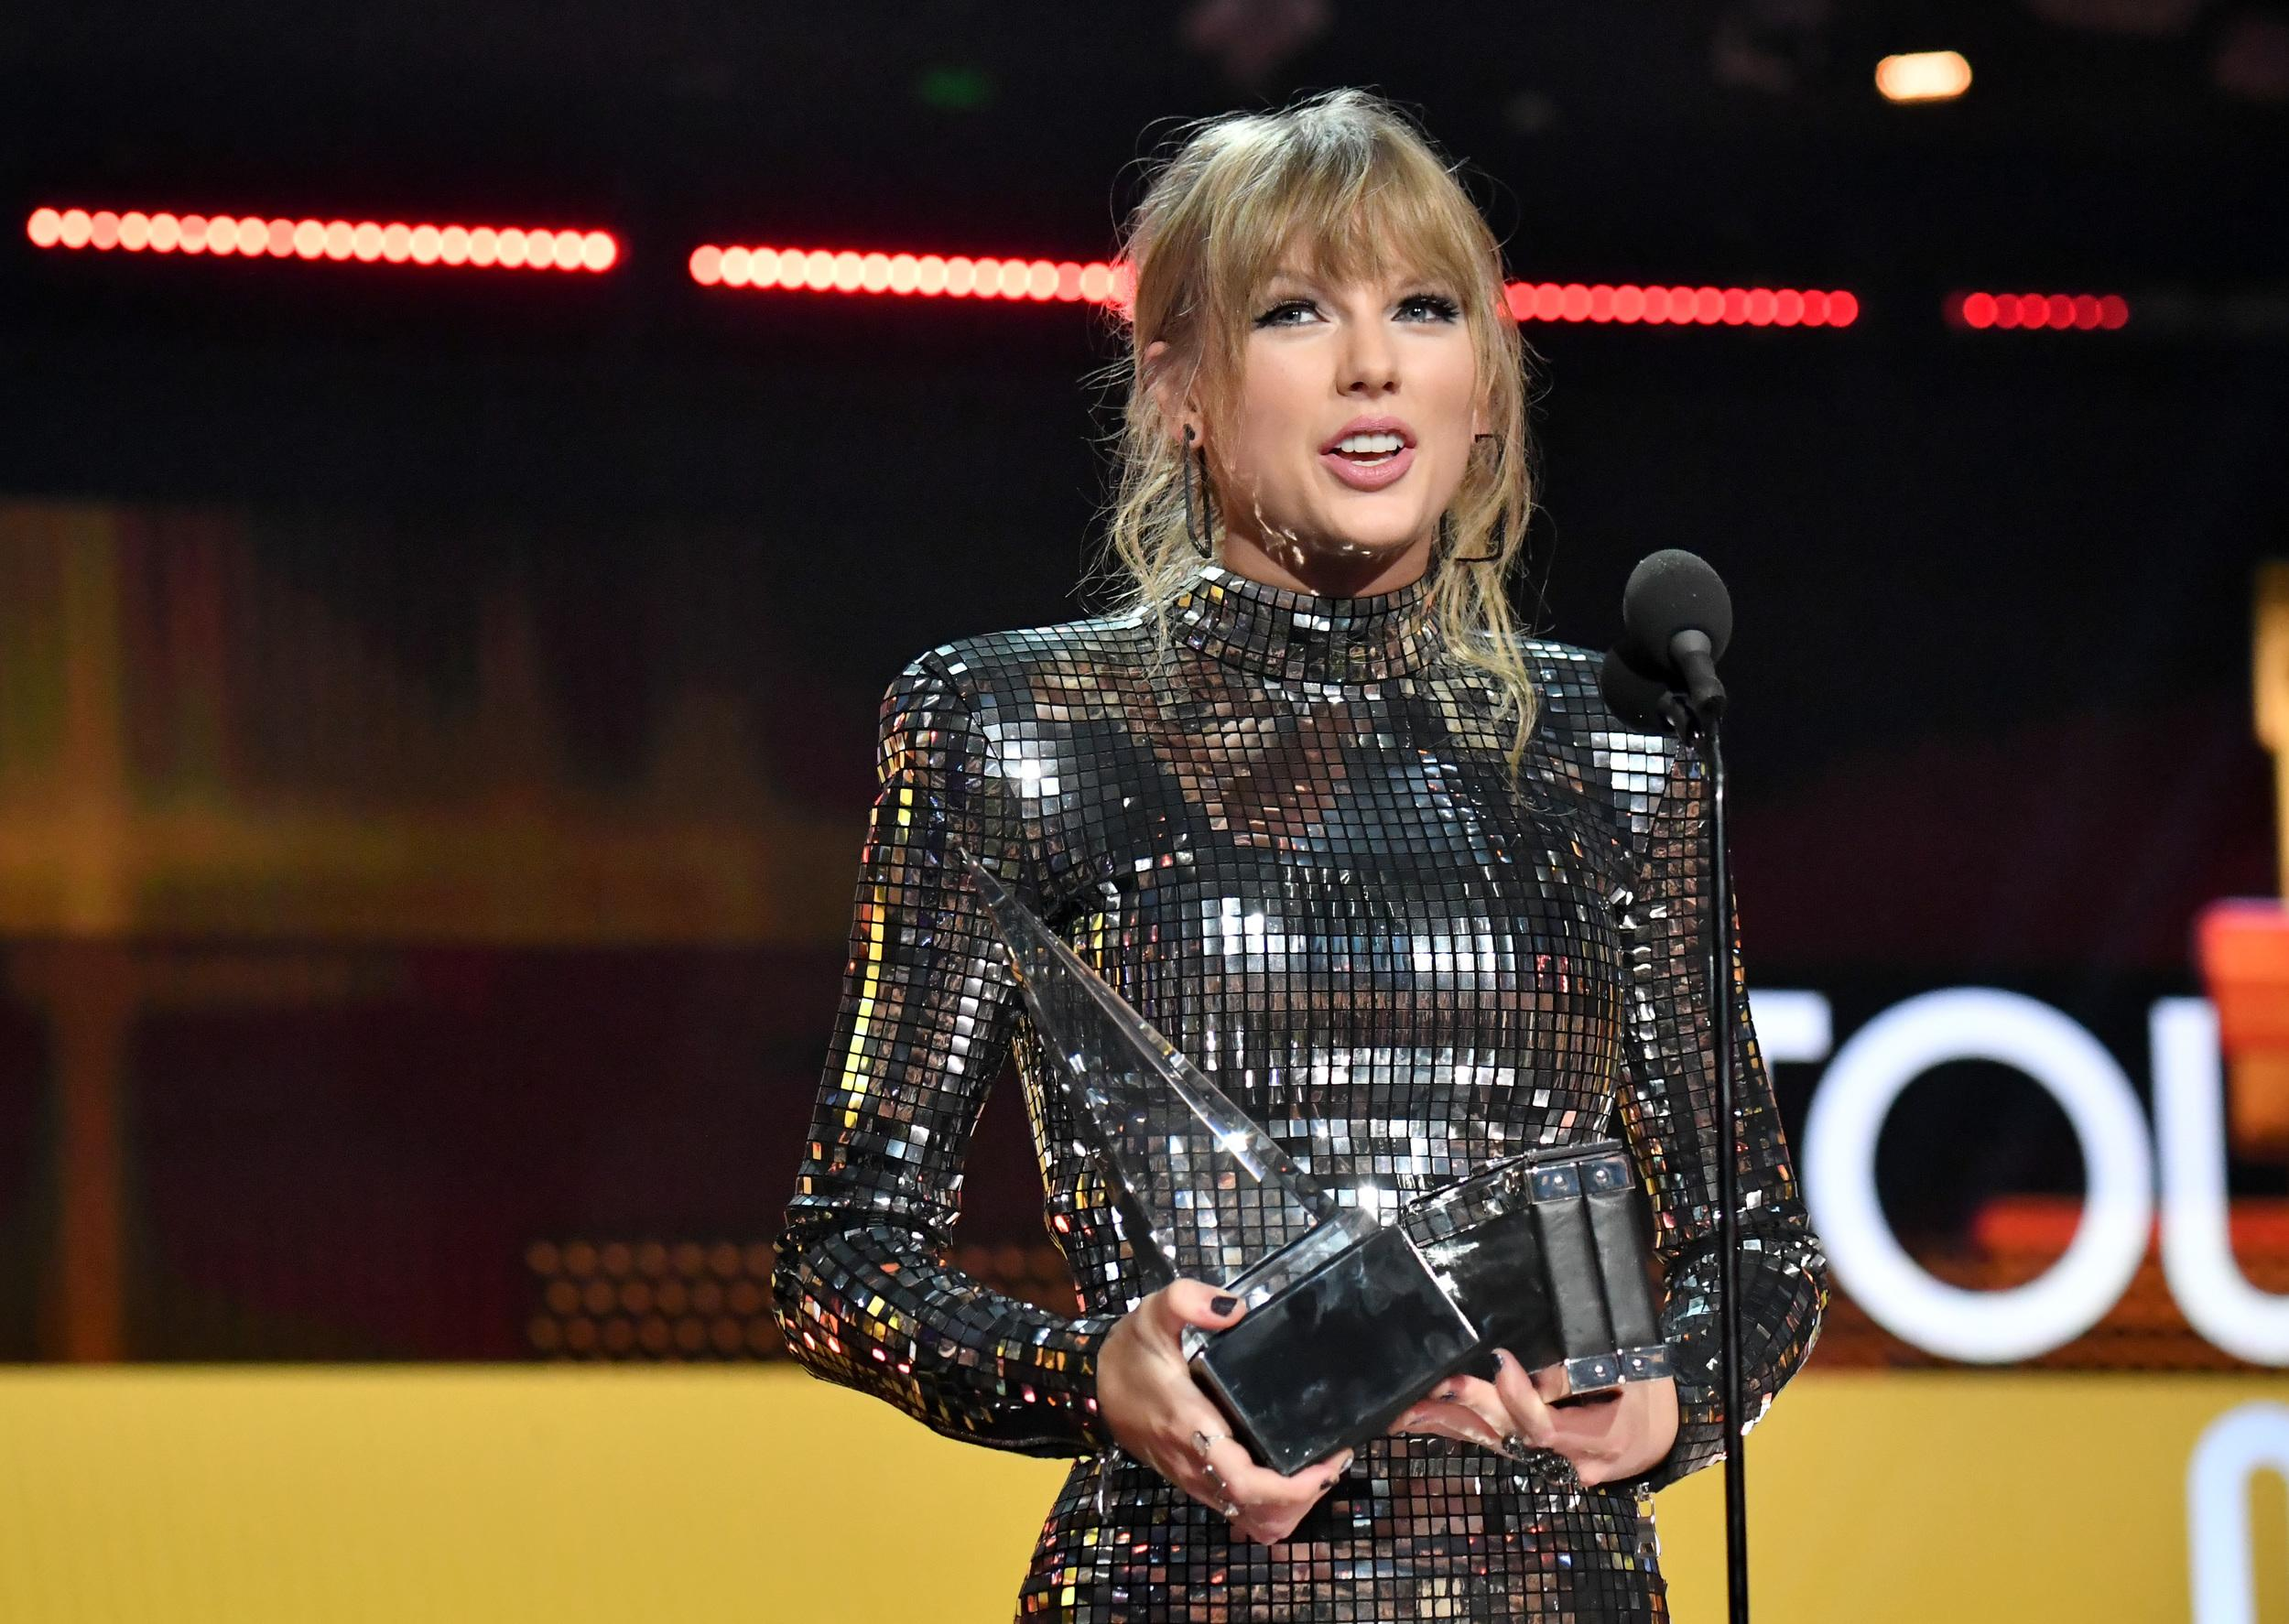 LOS ANGELES, CA - OCTOBER 09:  Taylor Swift accepts the Tour of the Year award onstage during the 2018 American Music Awards at Microsoft Theater on October 9, 2018 in Los Angeles, California.  (Photo by Jeff Kravitz/AMA2018/FilmMagic For dcp ,)